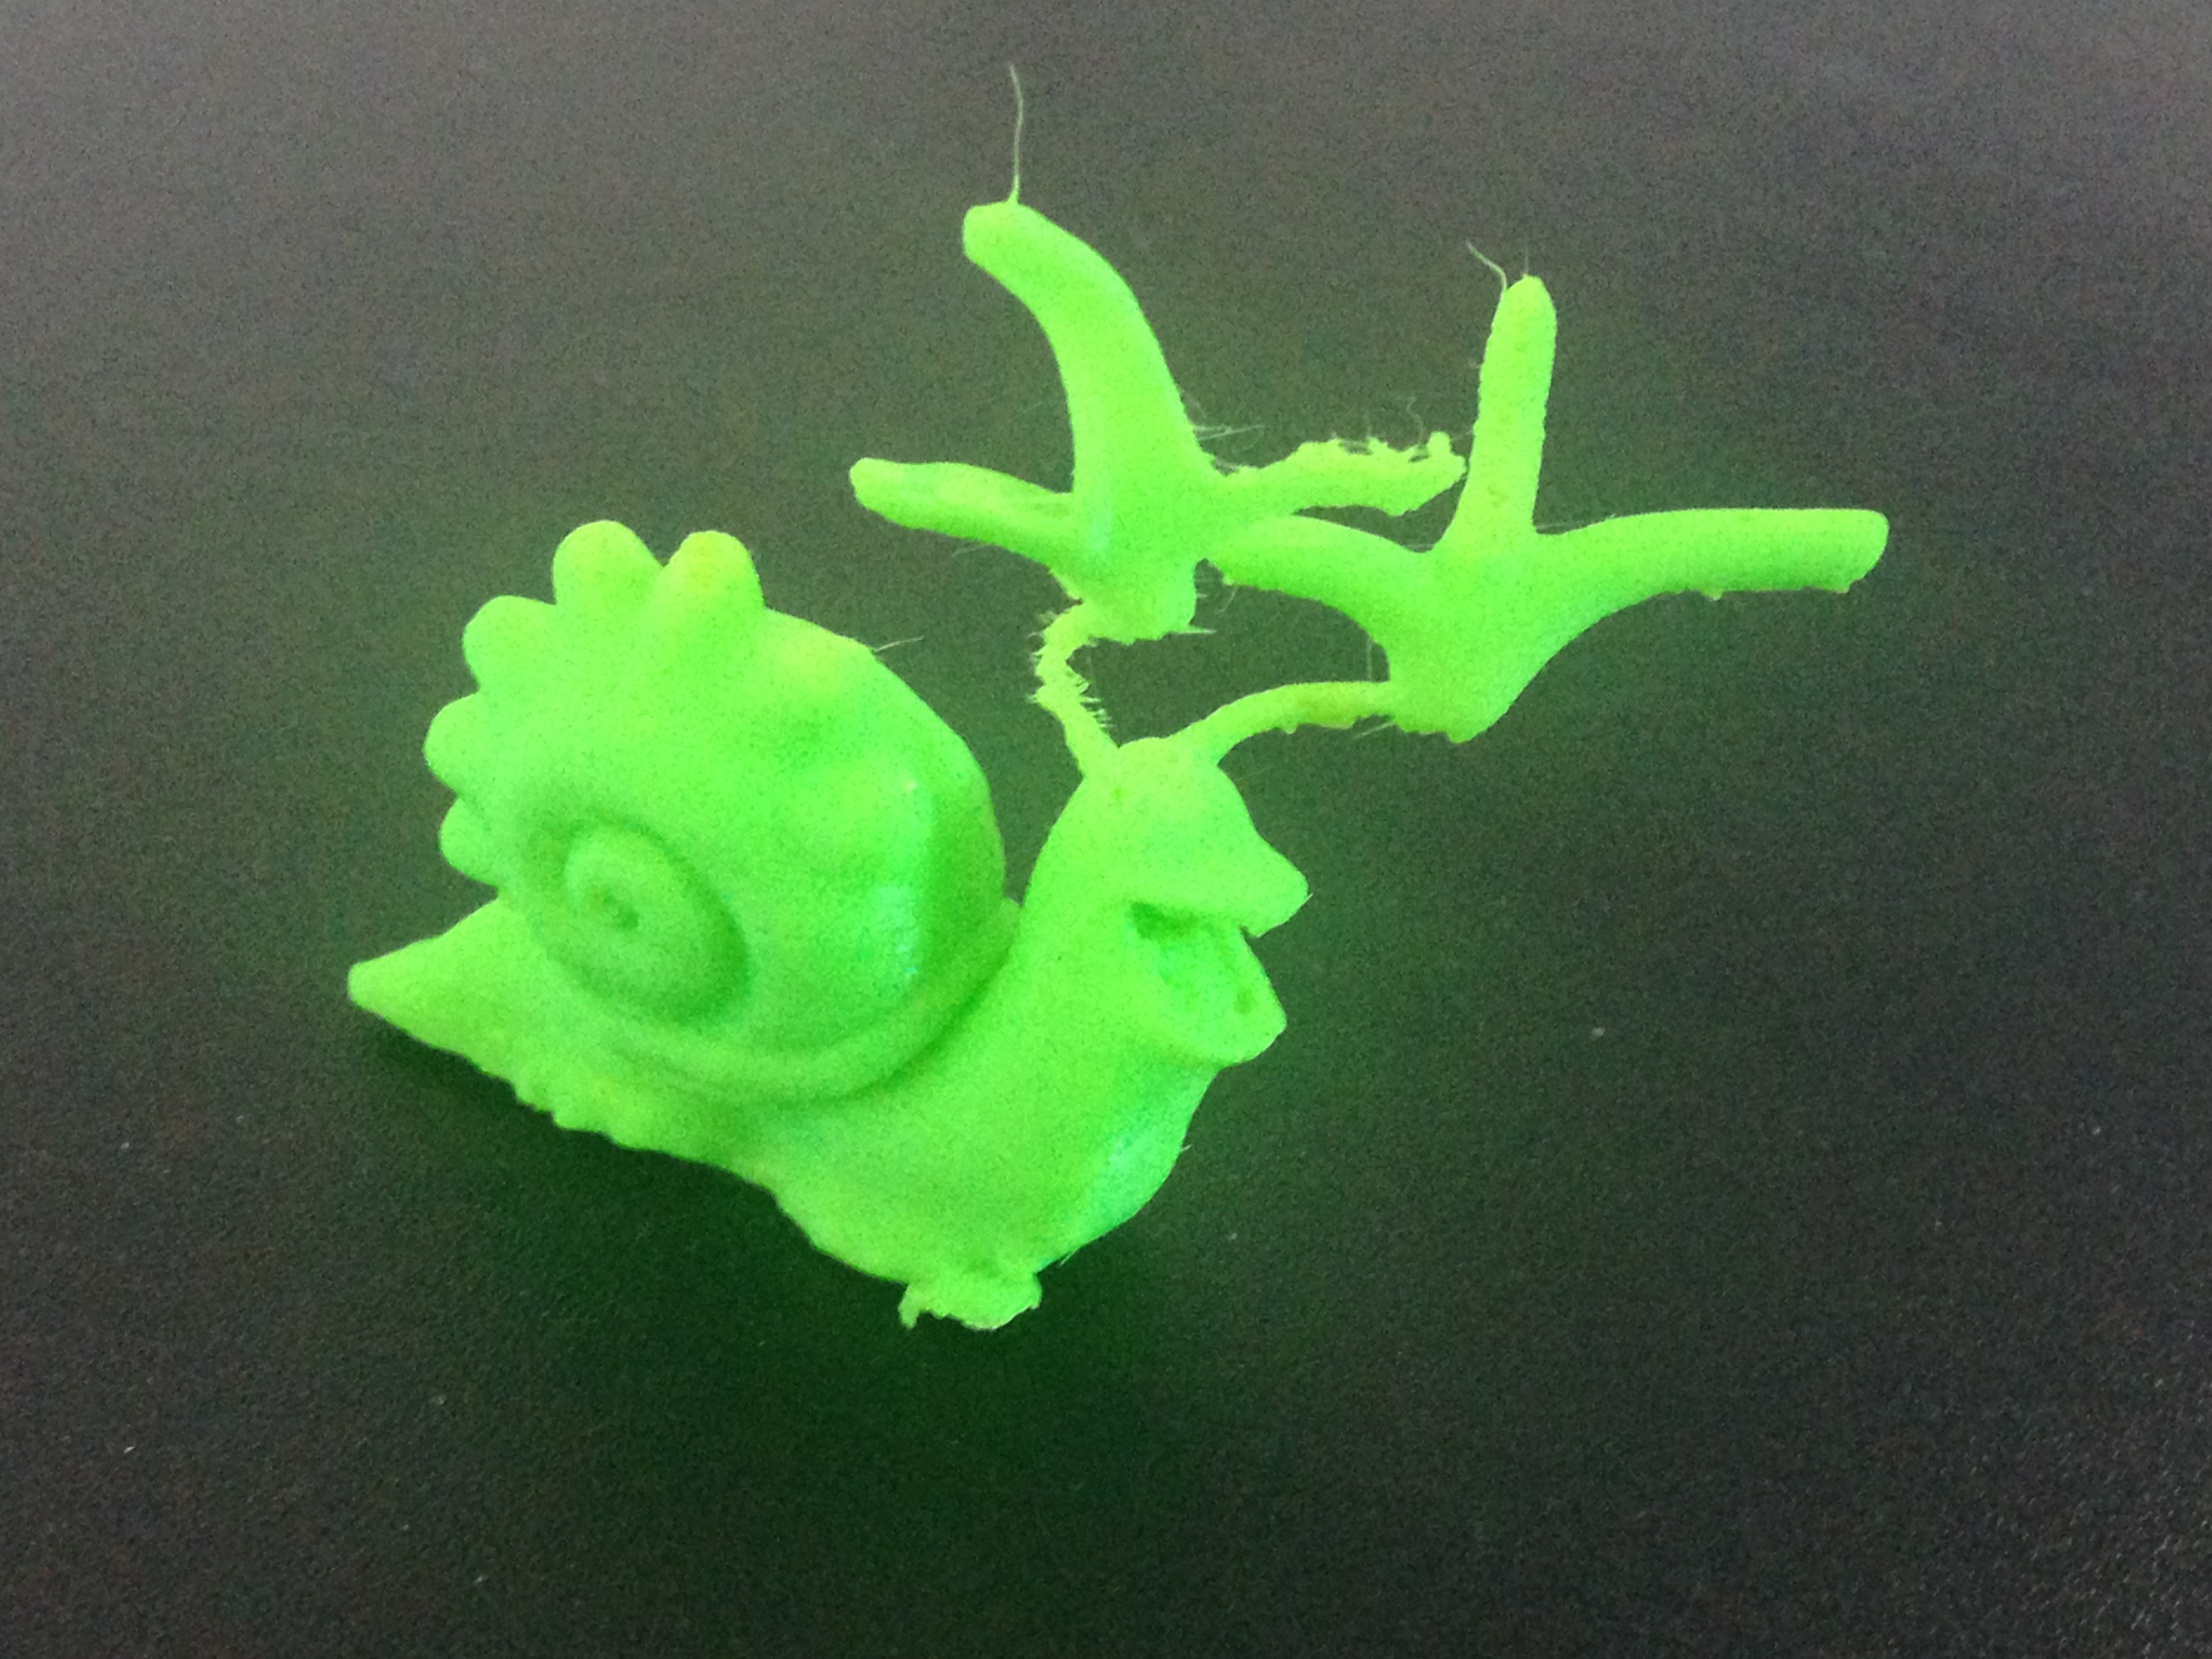 Final Print with support removed